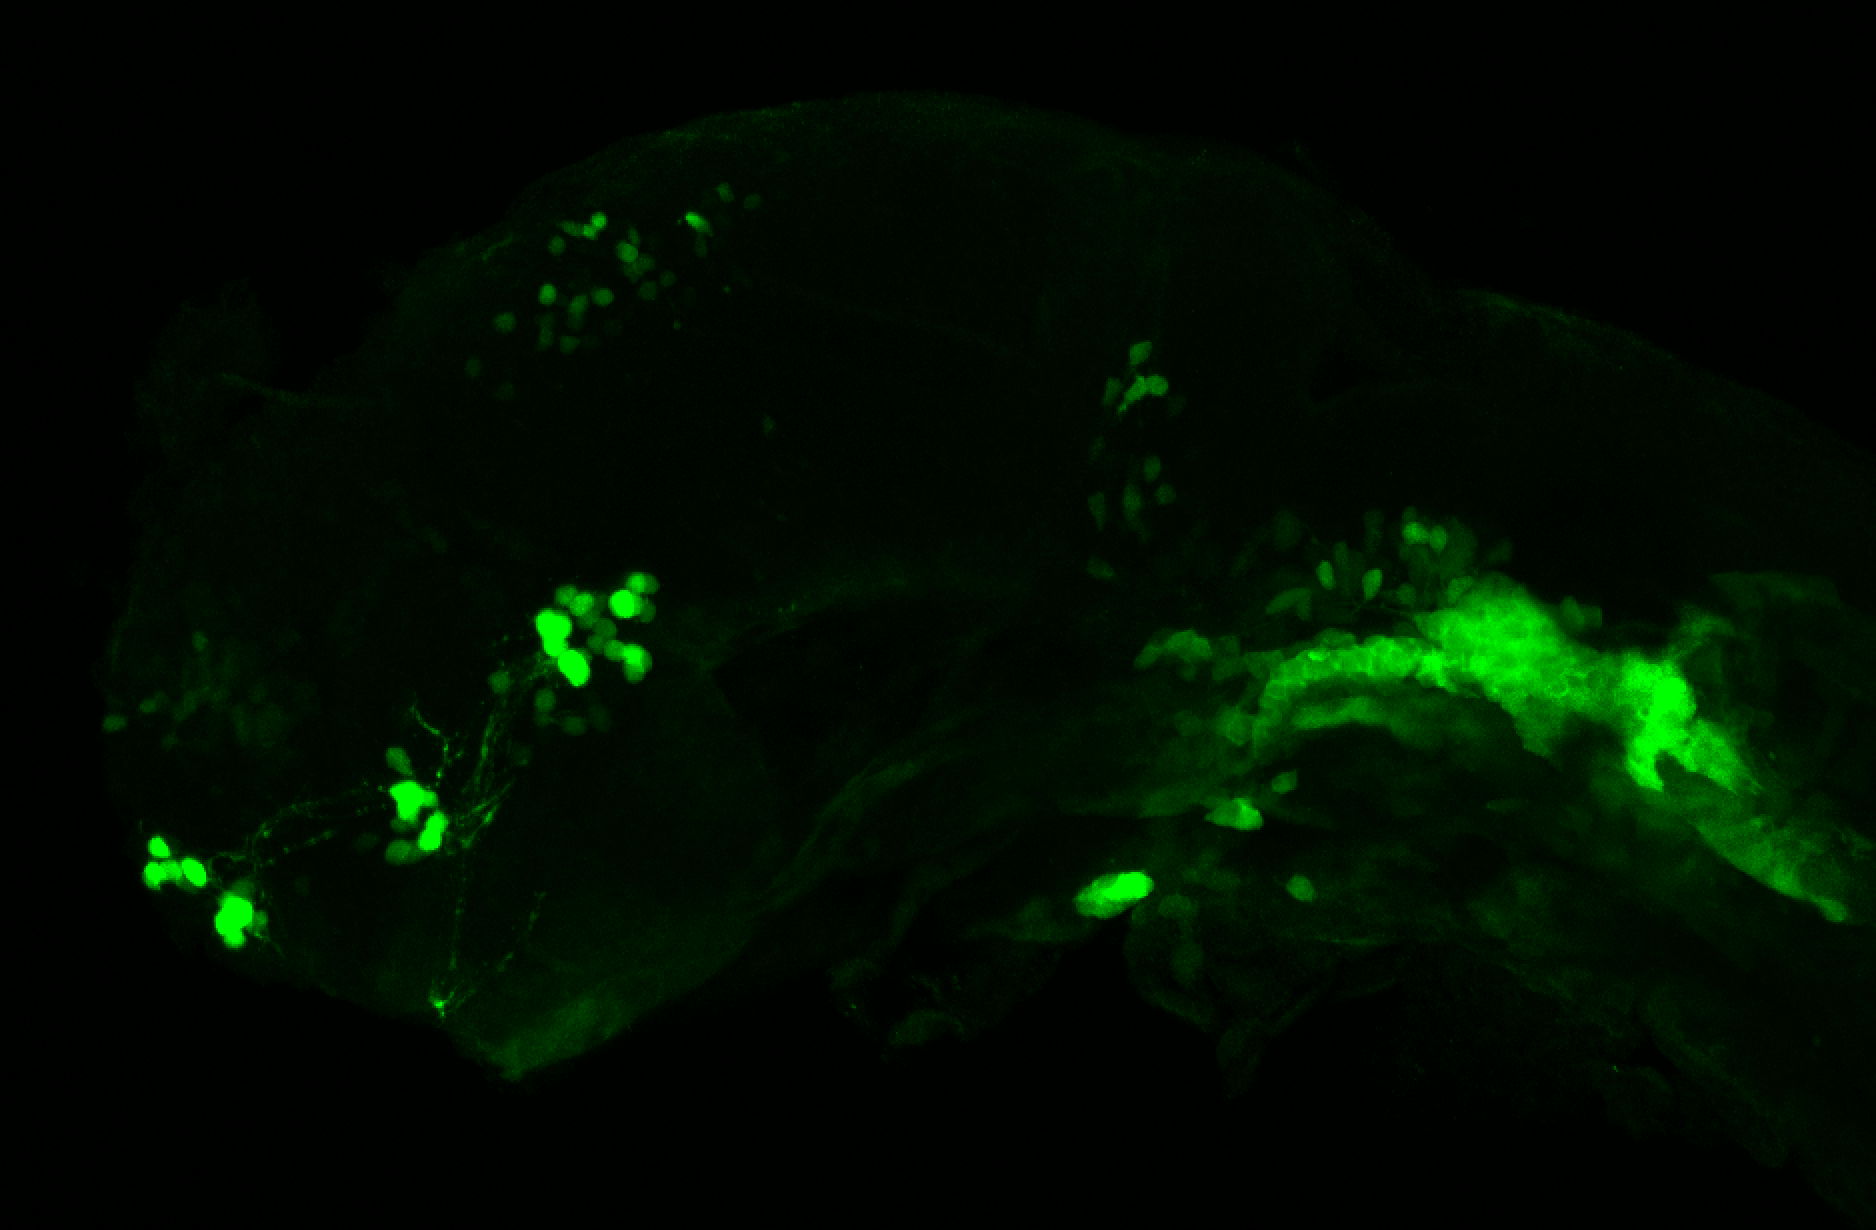 xeom:GFP 36hpf lateral